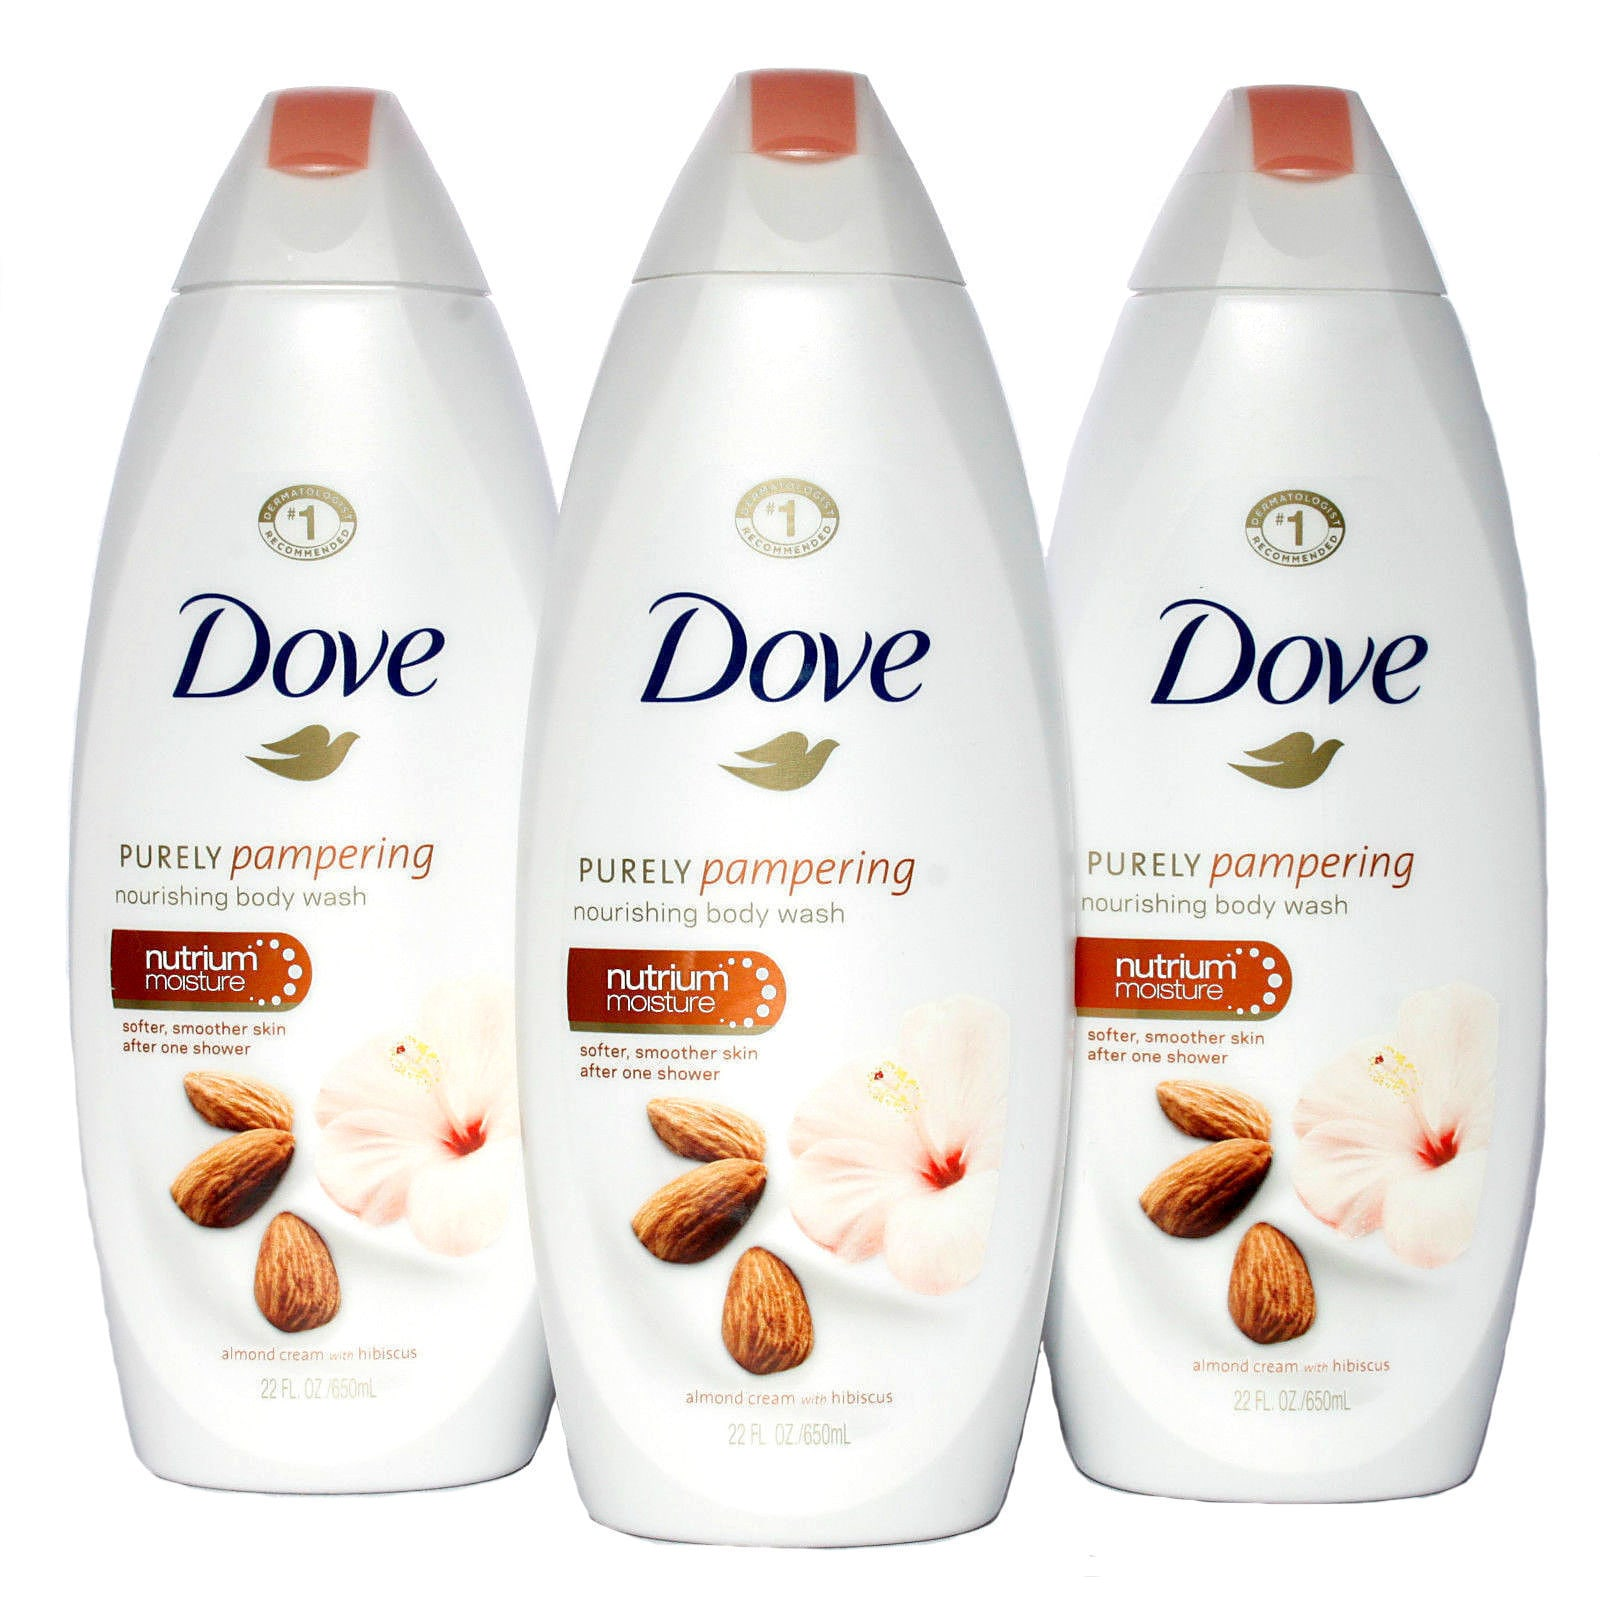 Shop Dove Purely Pampering 22 Ounce Almond Cream With Hibiscus Body Wash Pack Of 3 Overstock 15789730